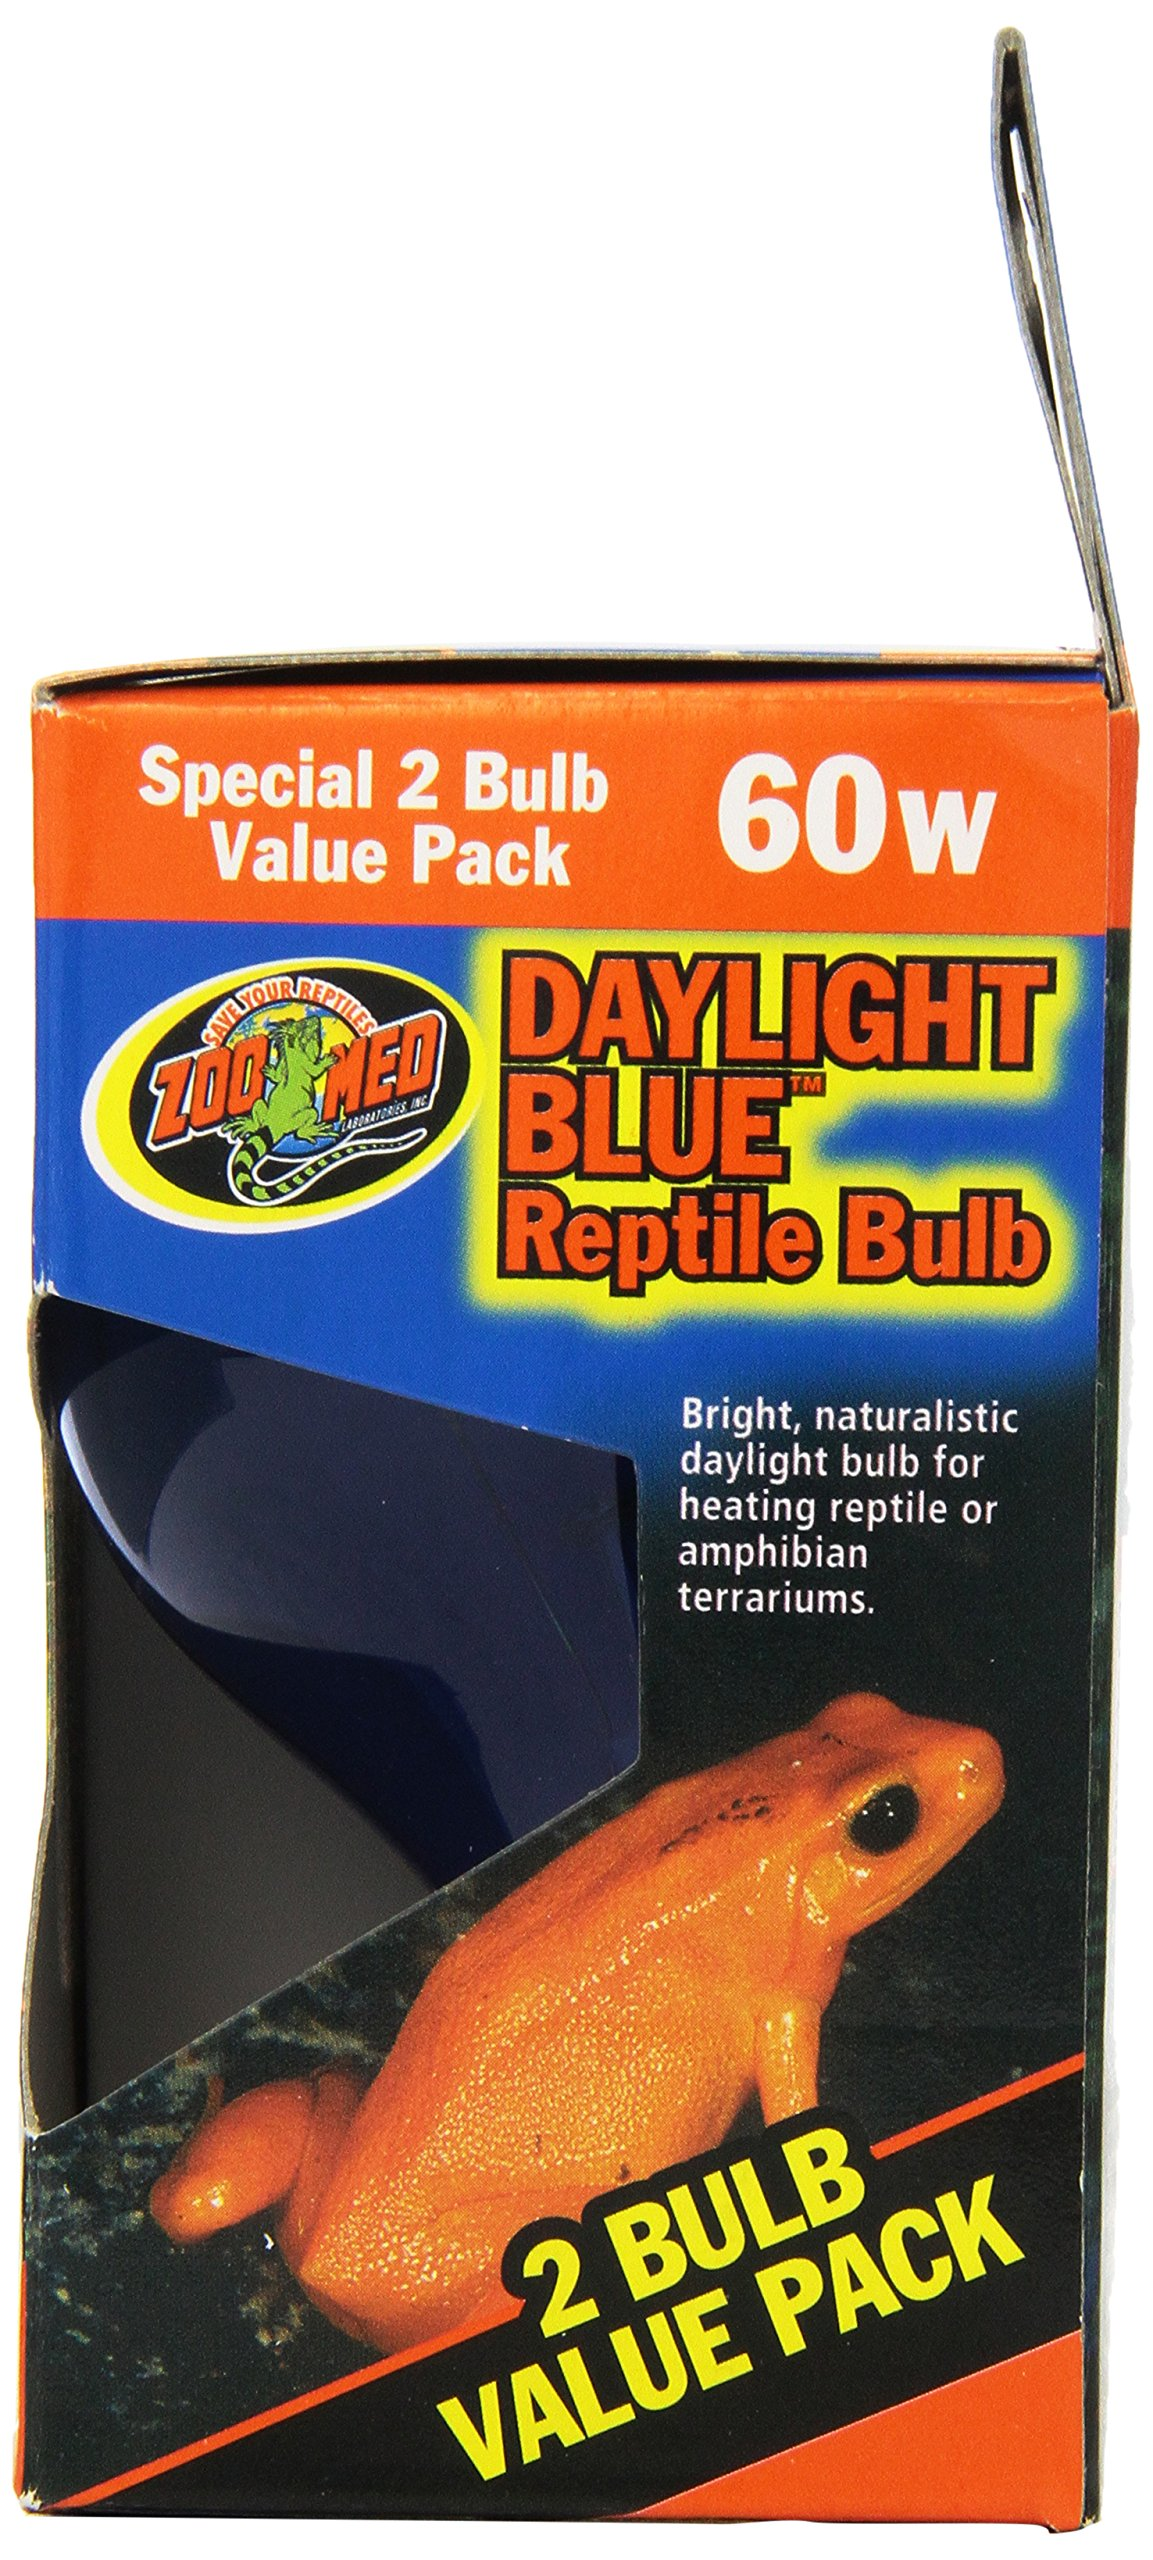 Zoo Med 2-Pack Daylight Blue Reptile Bulb, 60-watt by Zoo Med (Image #2)